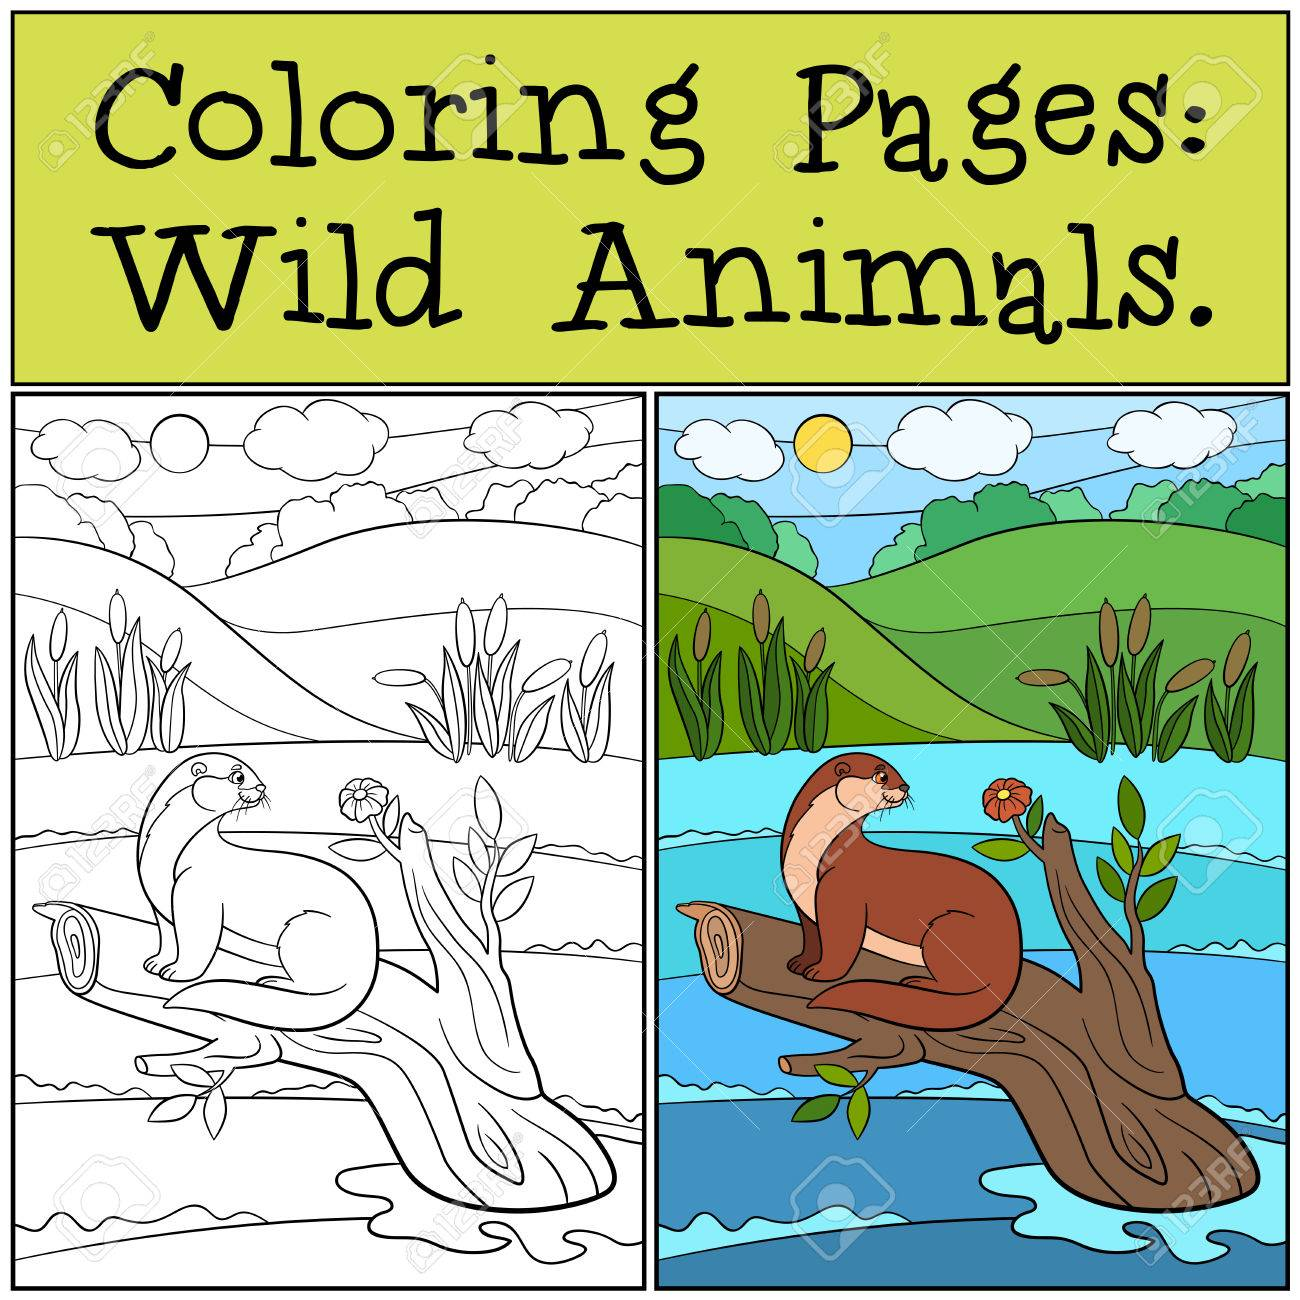 Coloring Pages: Wild Animals. Little Cute Otter Sits On The Tree ...